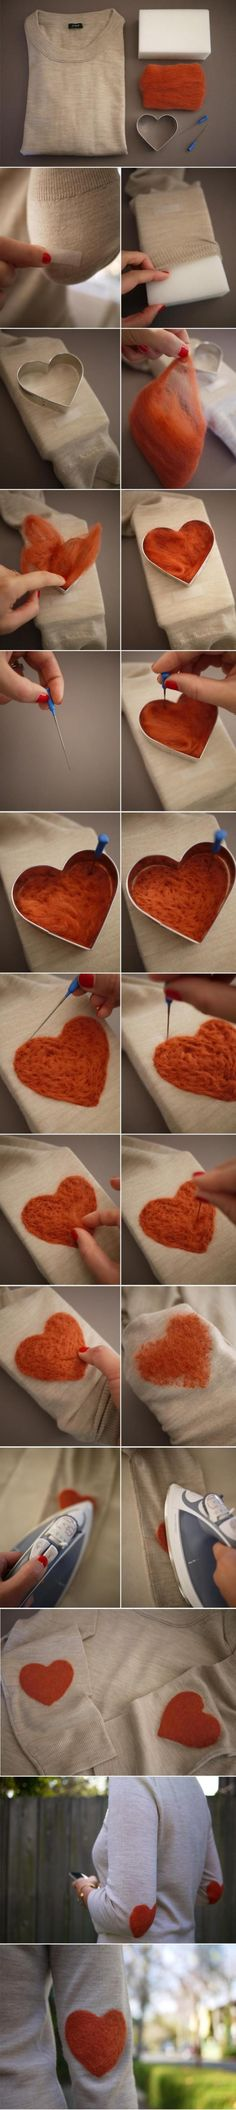 Fun #DIY idea!